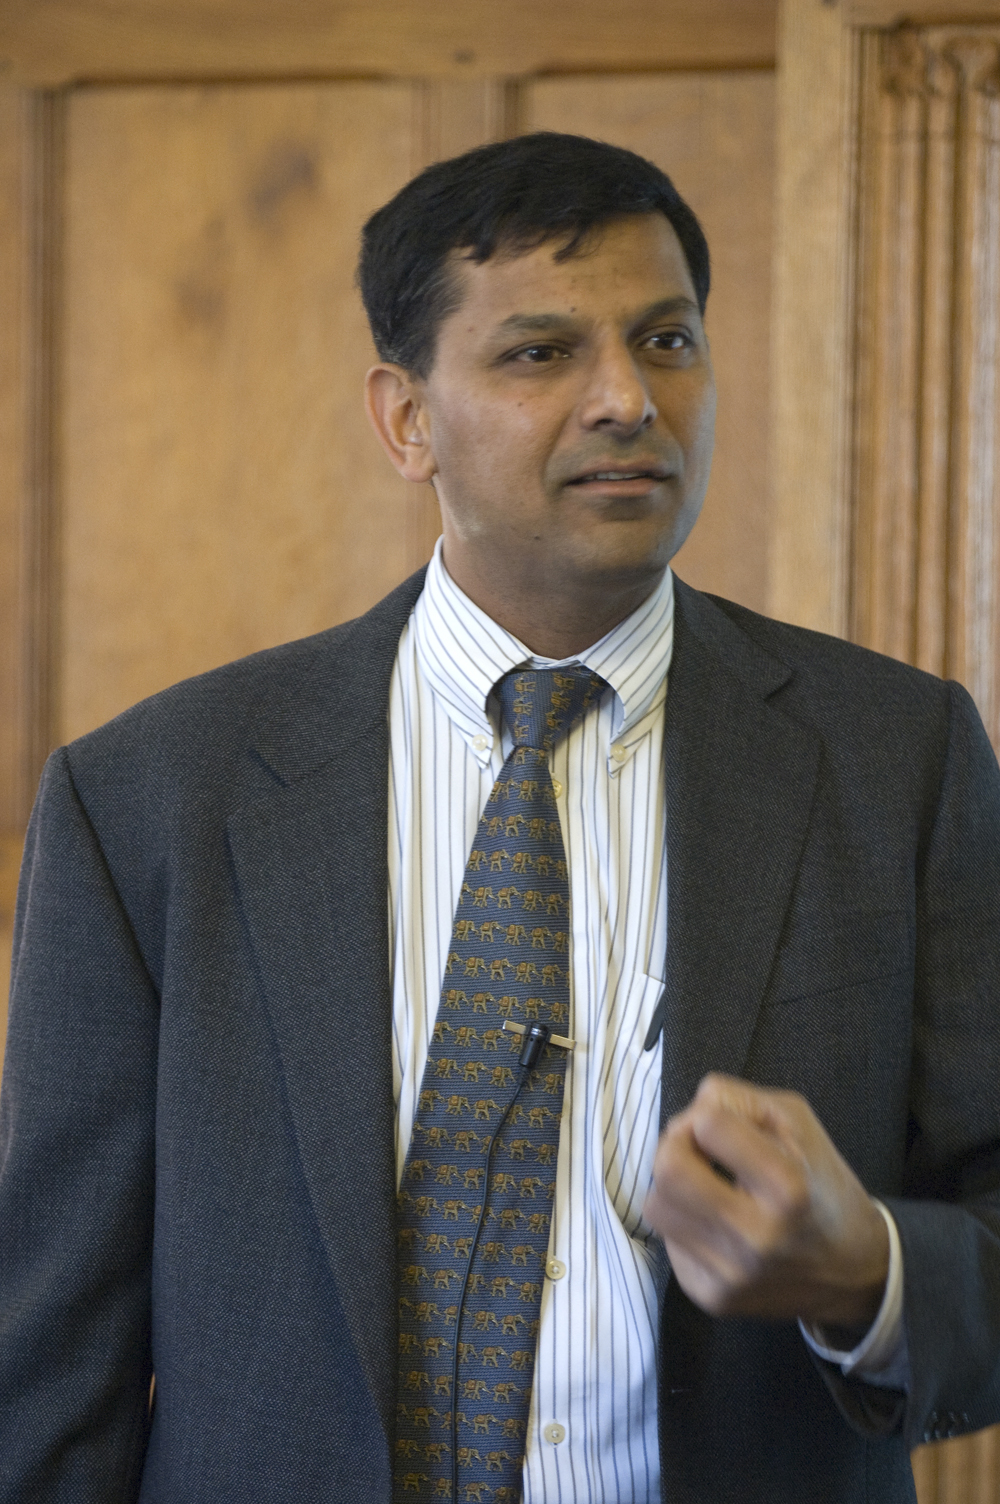 U. of Chicago Booth Prof. Raghuram Rajan